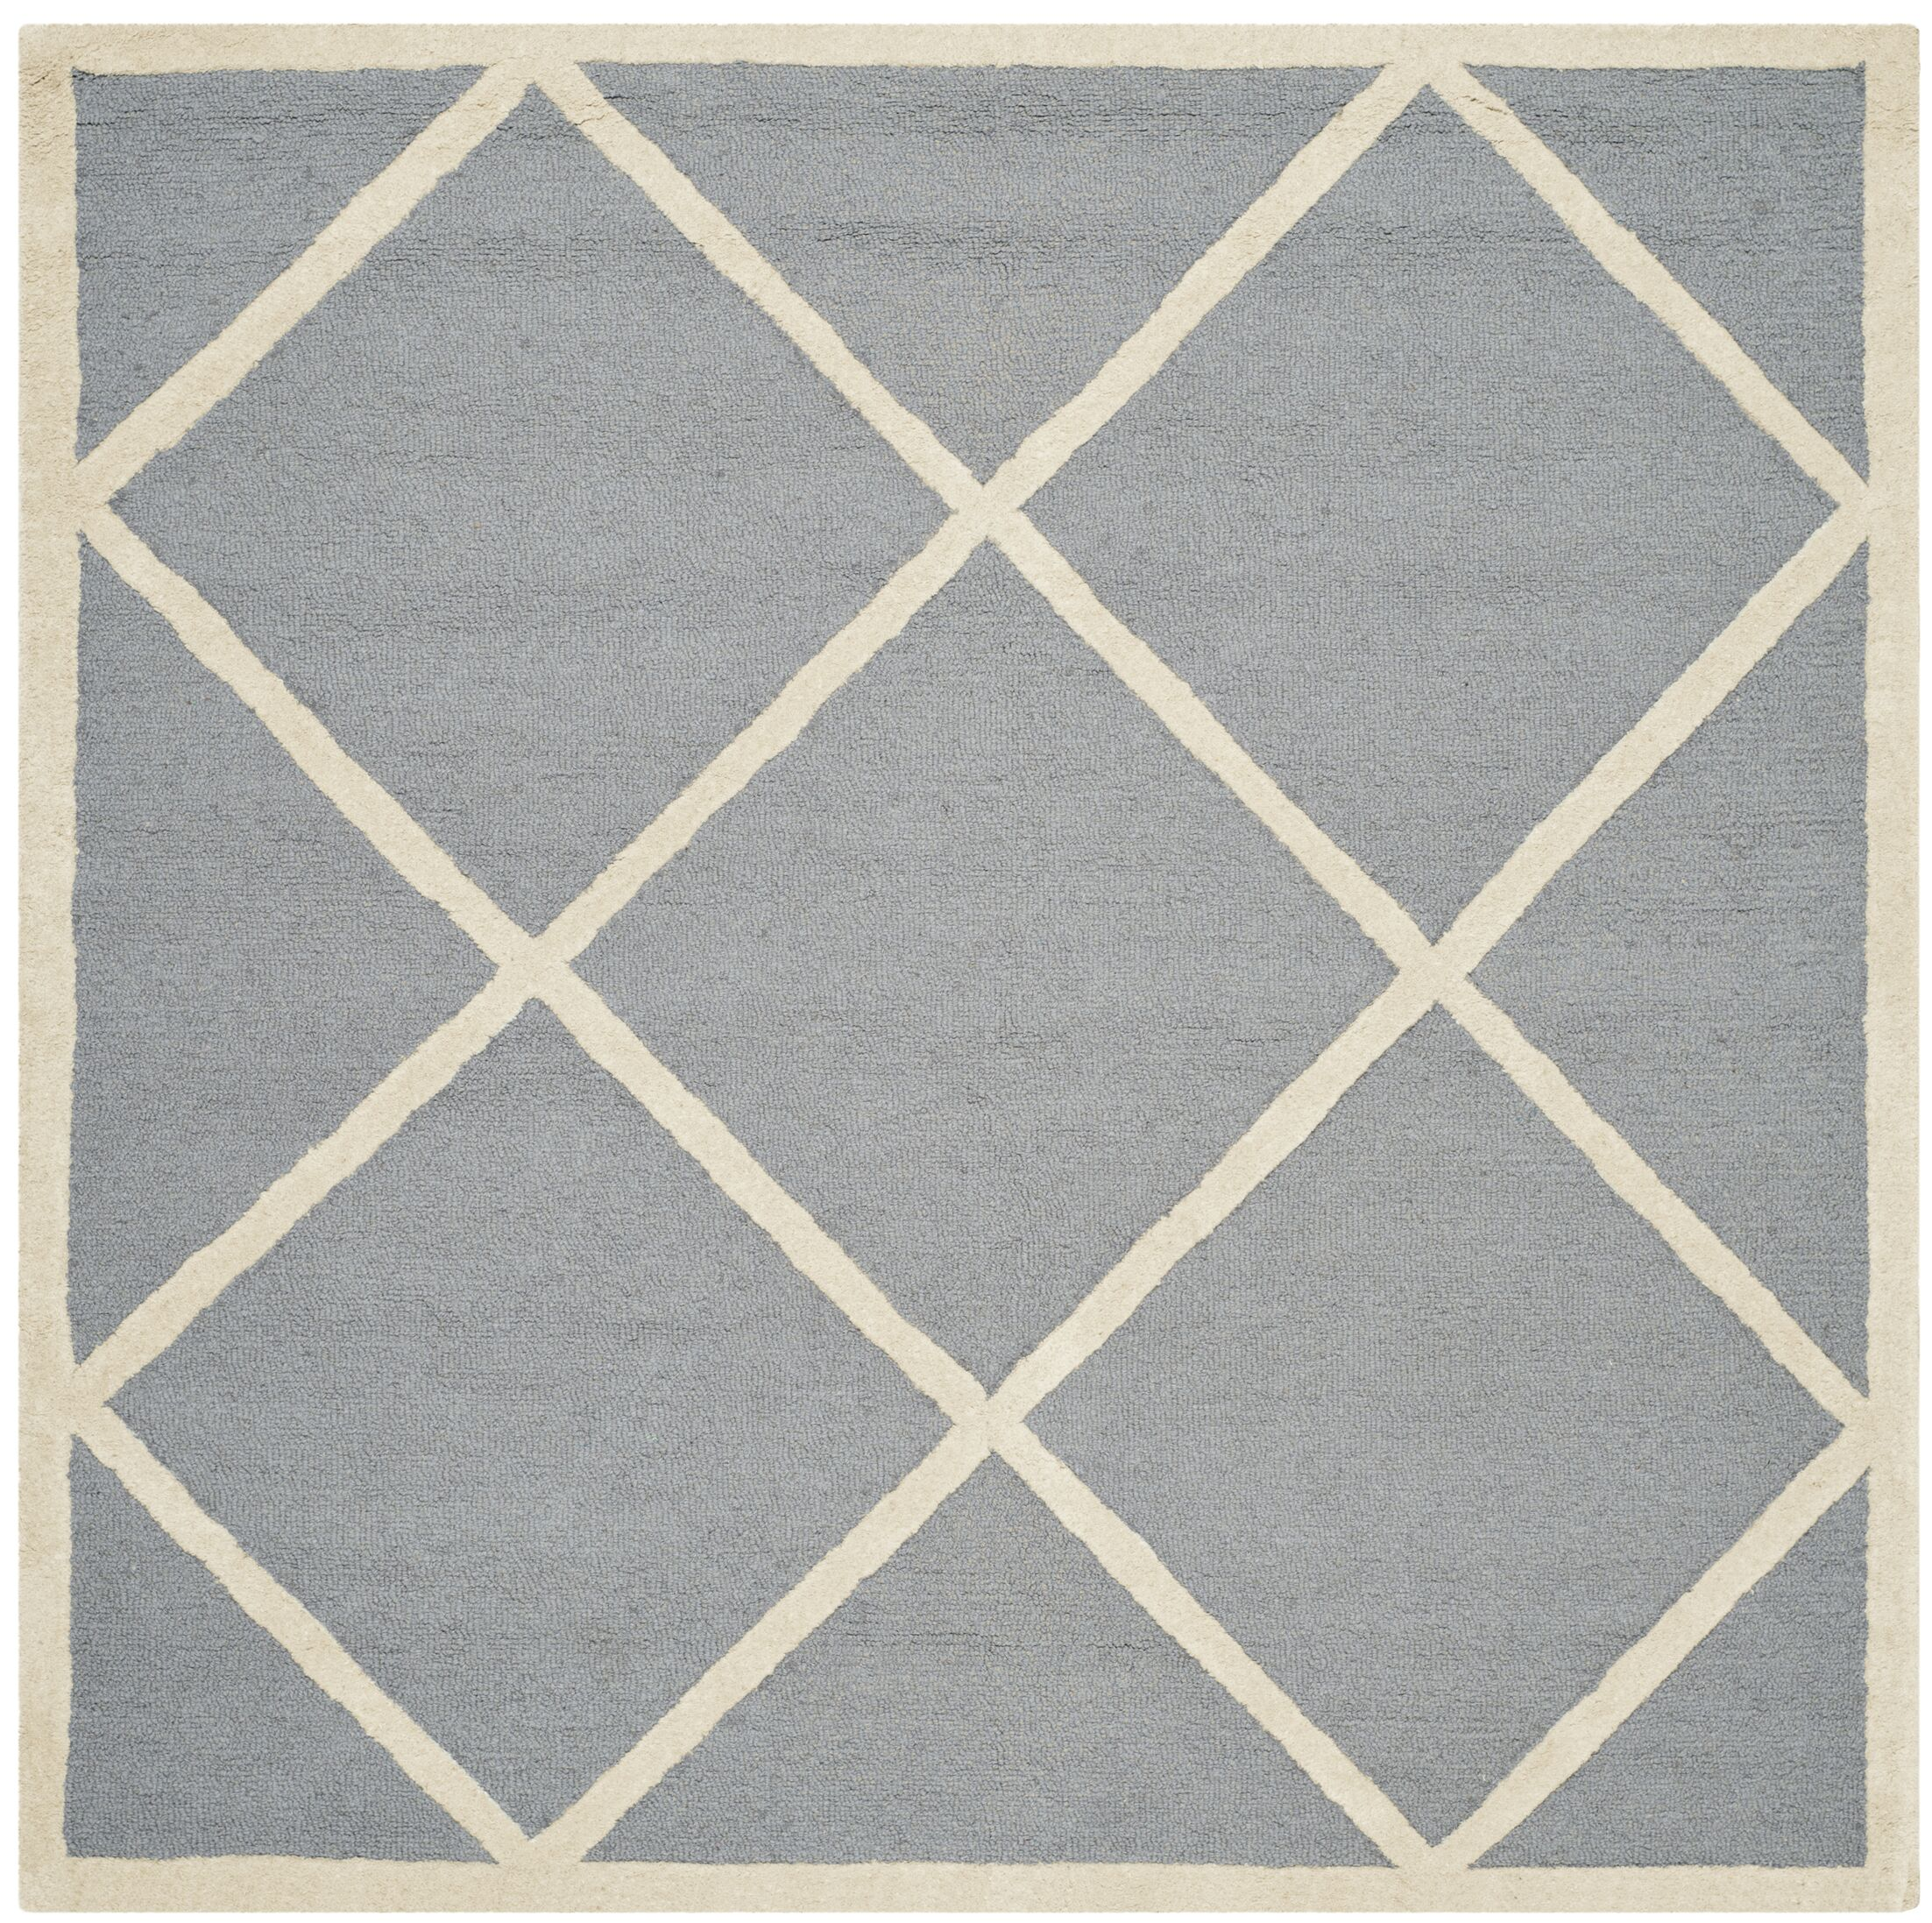 Martins Hand-Tufted Wool Gray/Ivory Area Rug Rug Size: Square 8'